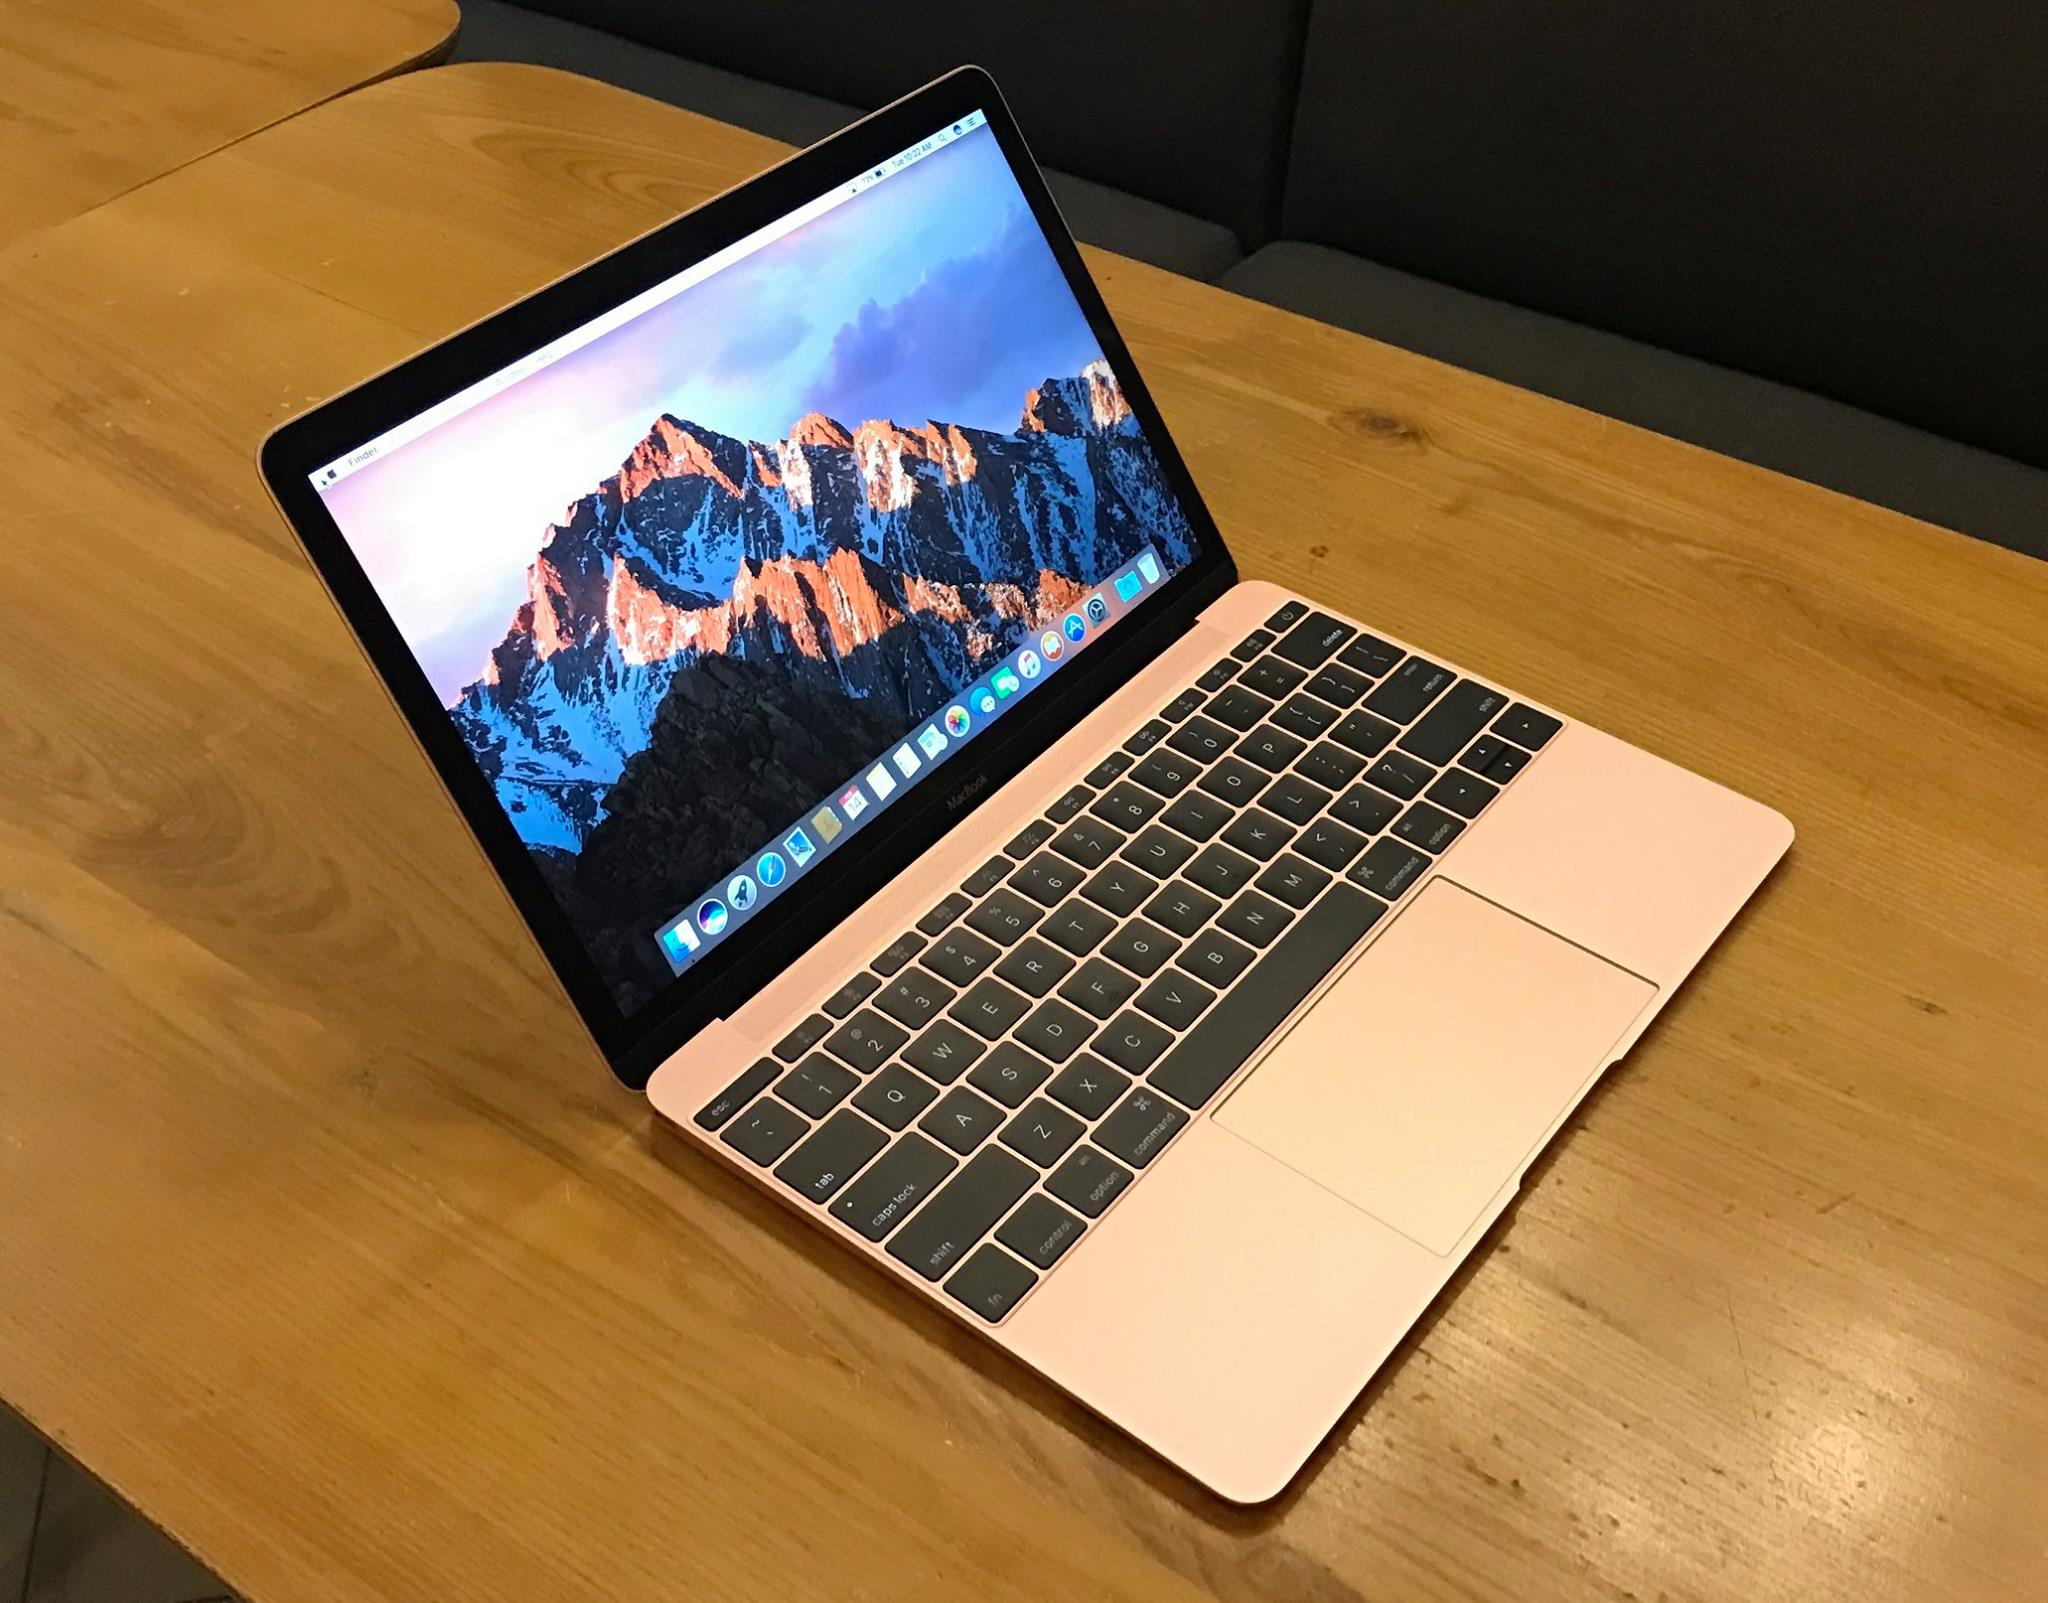 Retina_Touch_Bar_Air_New Macbook_iMac : 11''_12''_13''_15''_5K_4K_2K . - 12